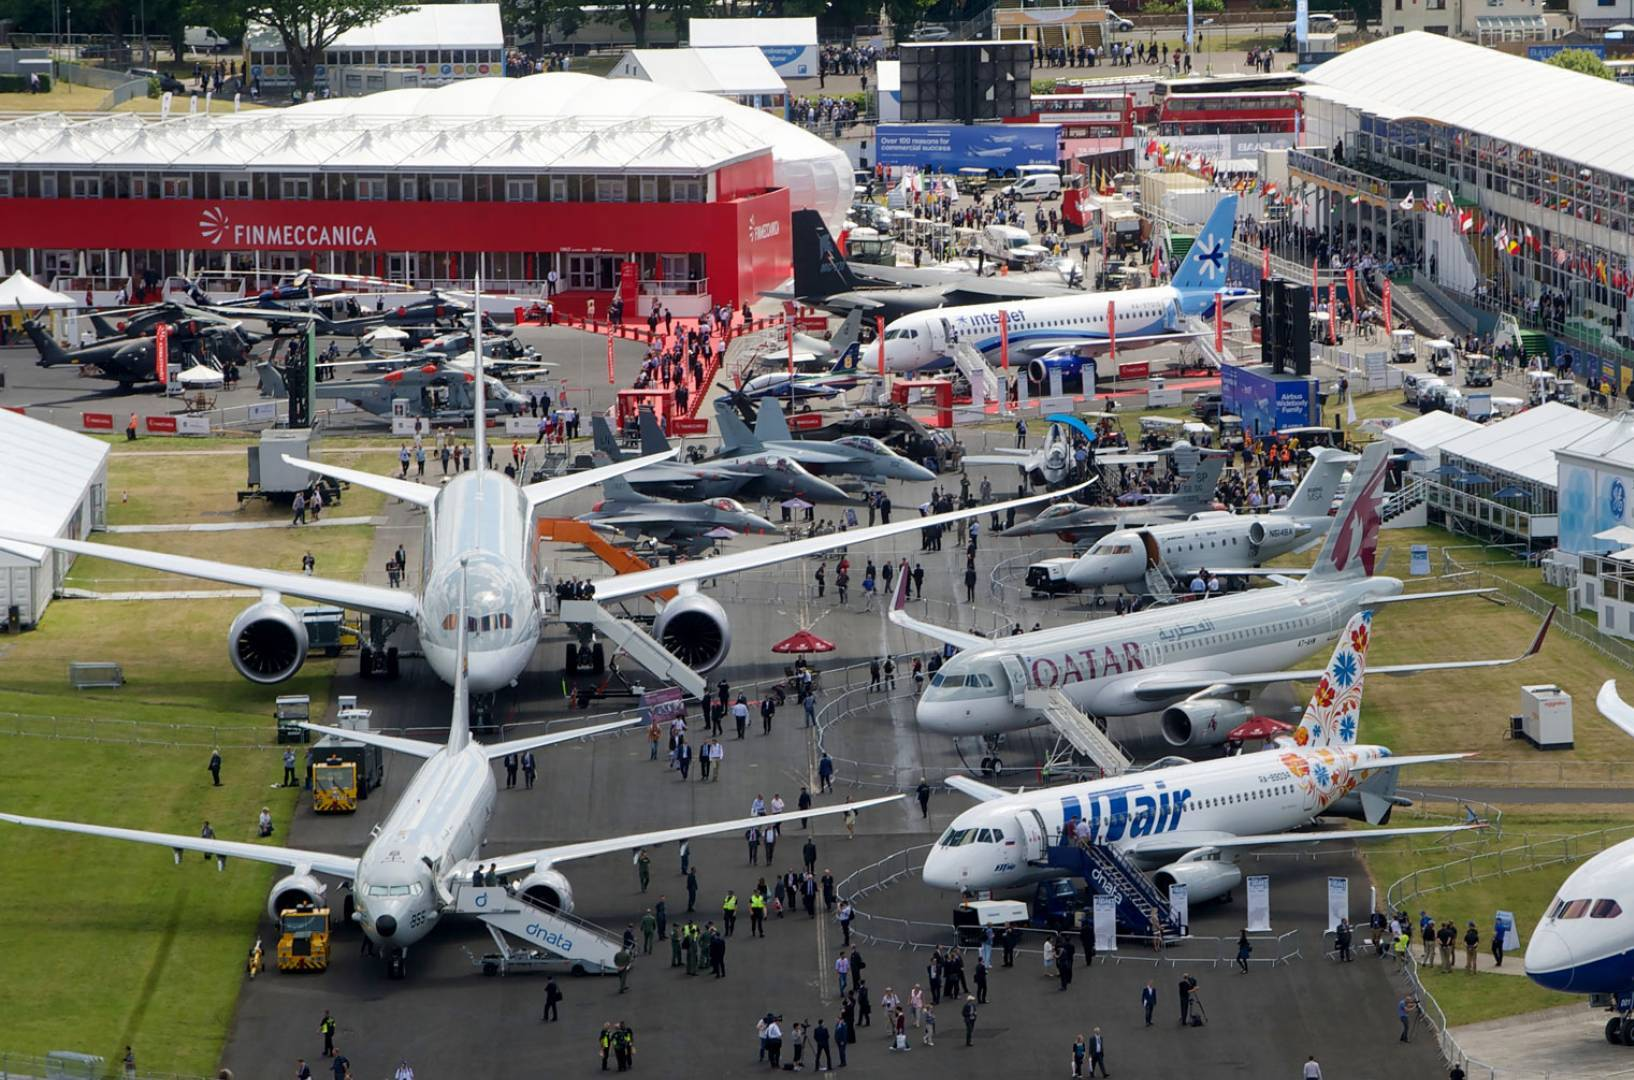 farnborough-international-airshow-2020-july-overview